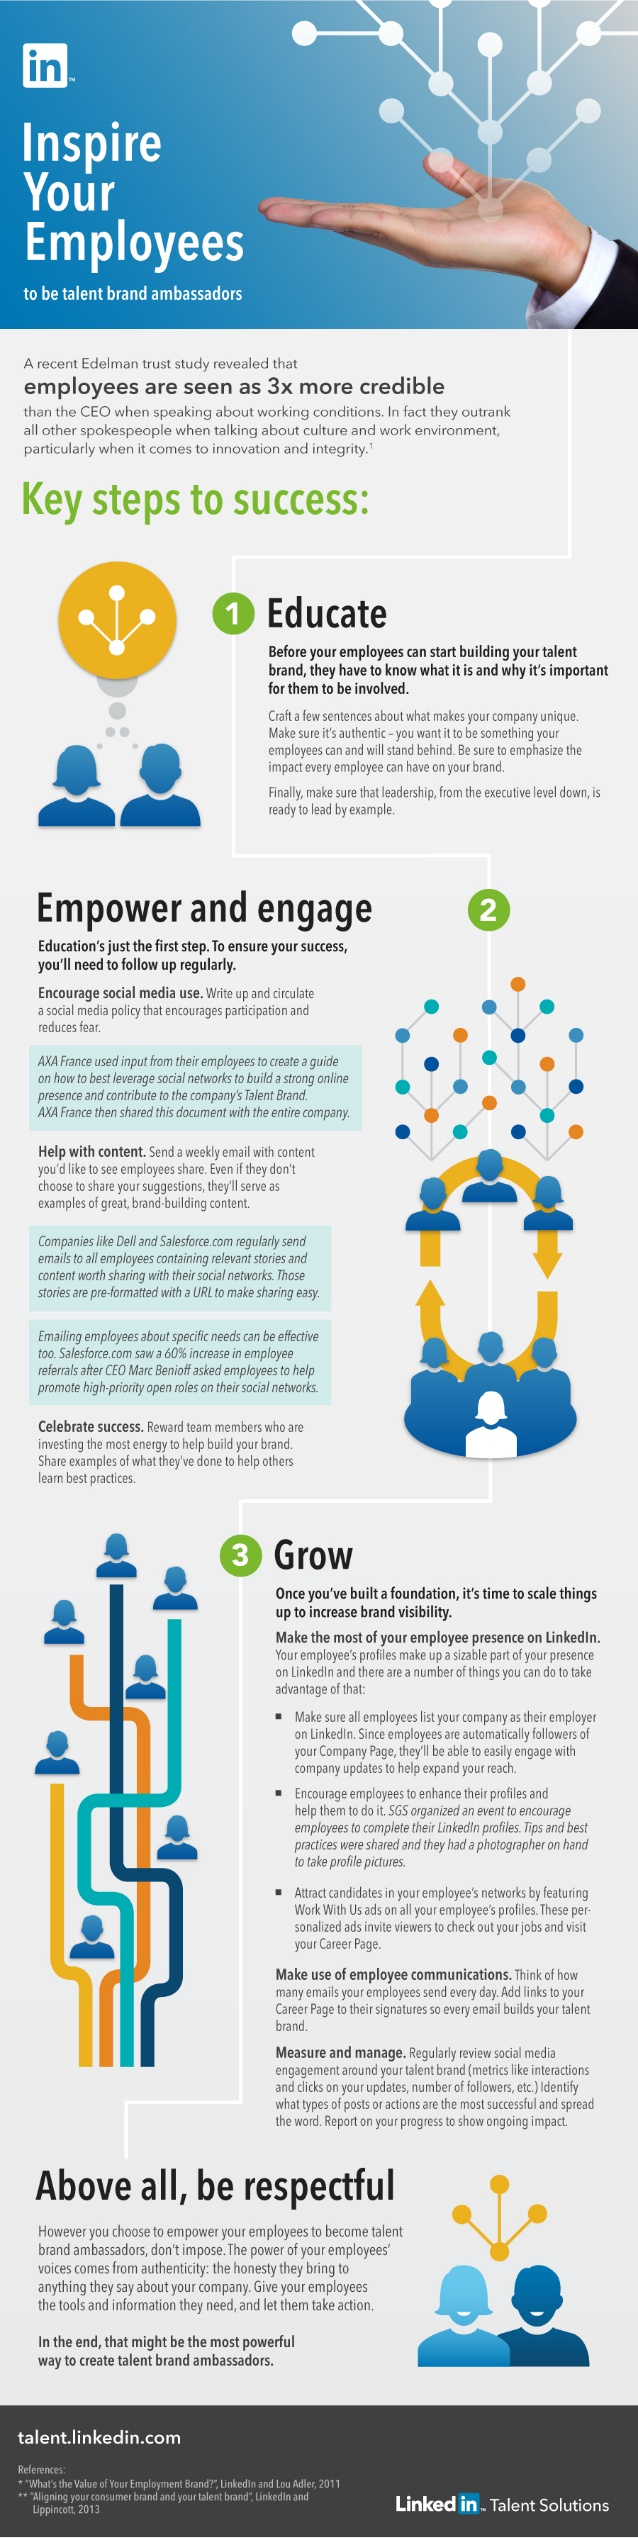 Inspire Your Employees to Become Talent Brand Ambassadors | Infographic by LinkedIn Talent Solutions via slideshare